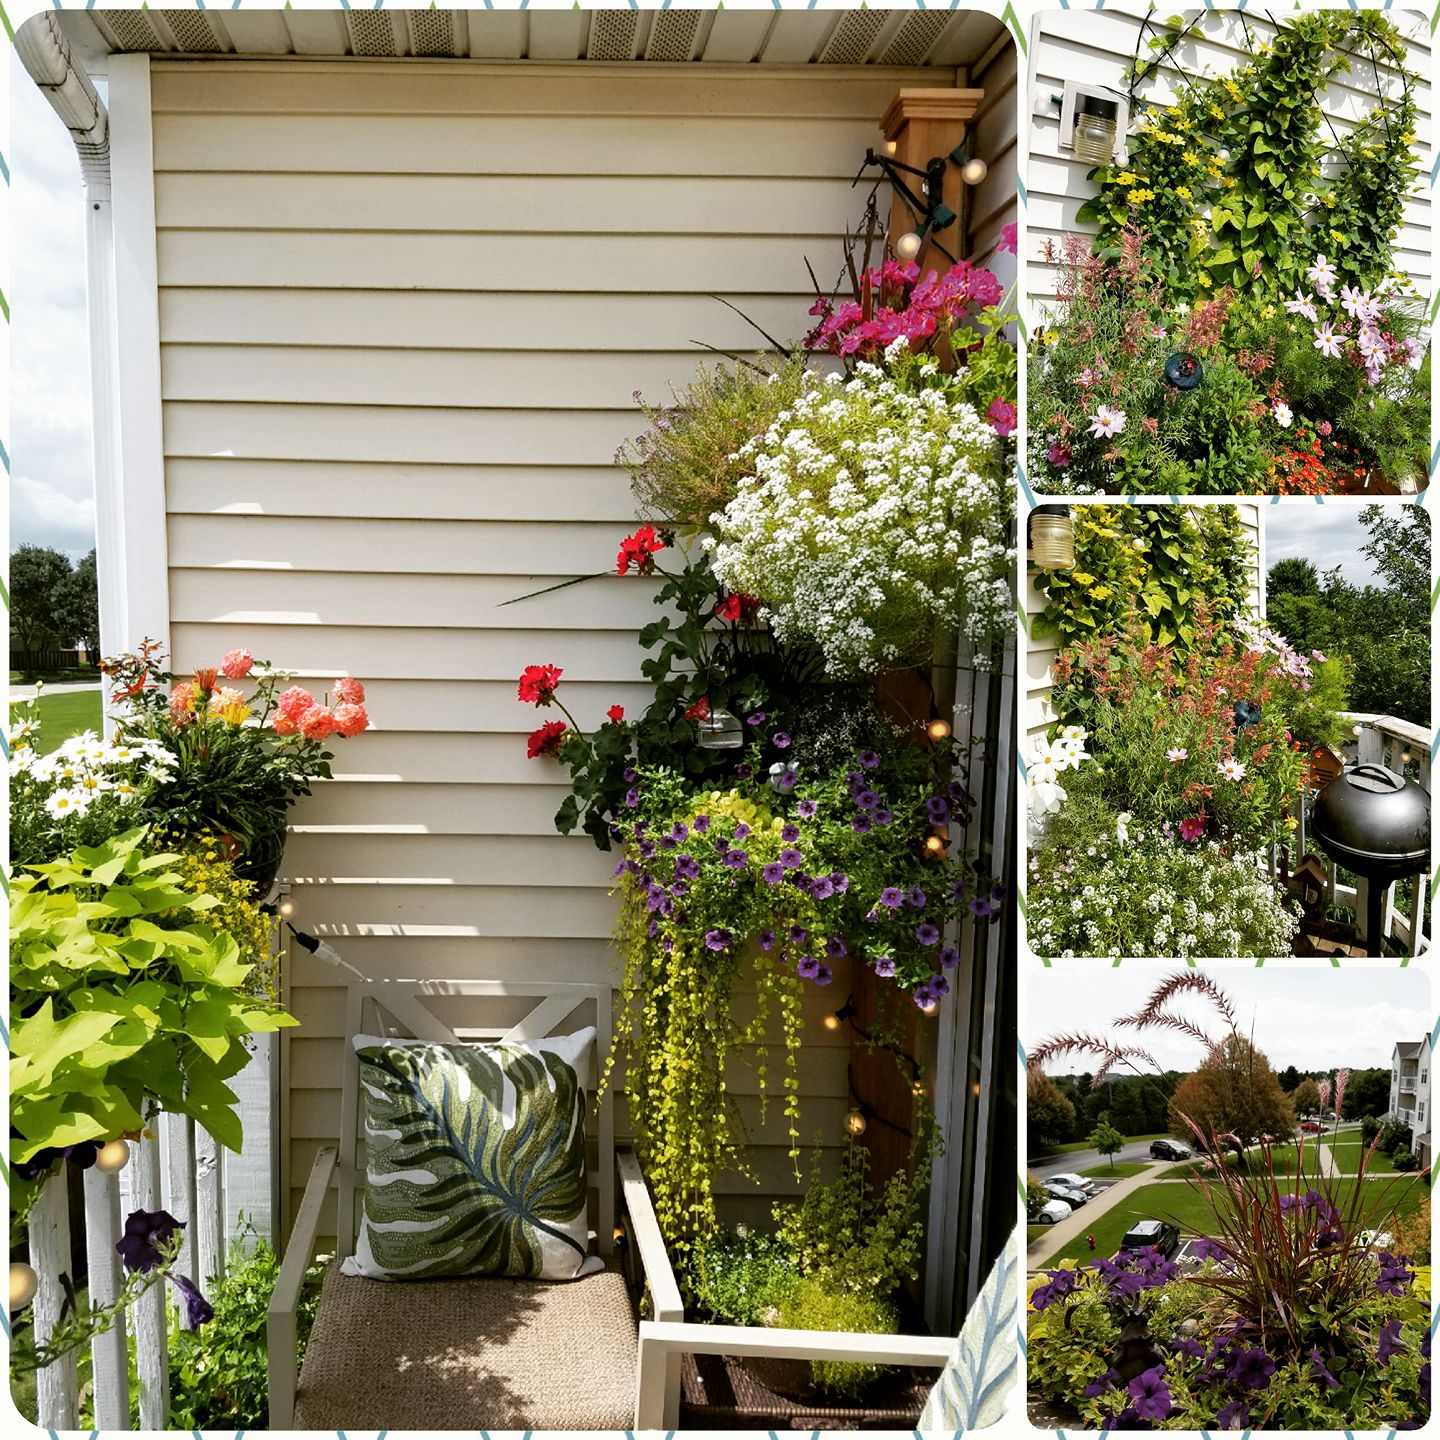 Garden Balconies: 17 Balcony Garden Pictures For Inspiration From Our